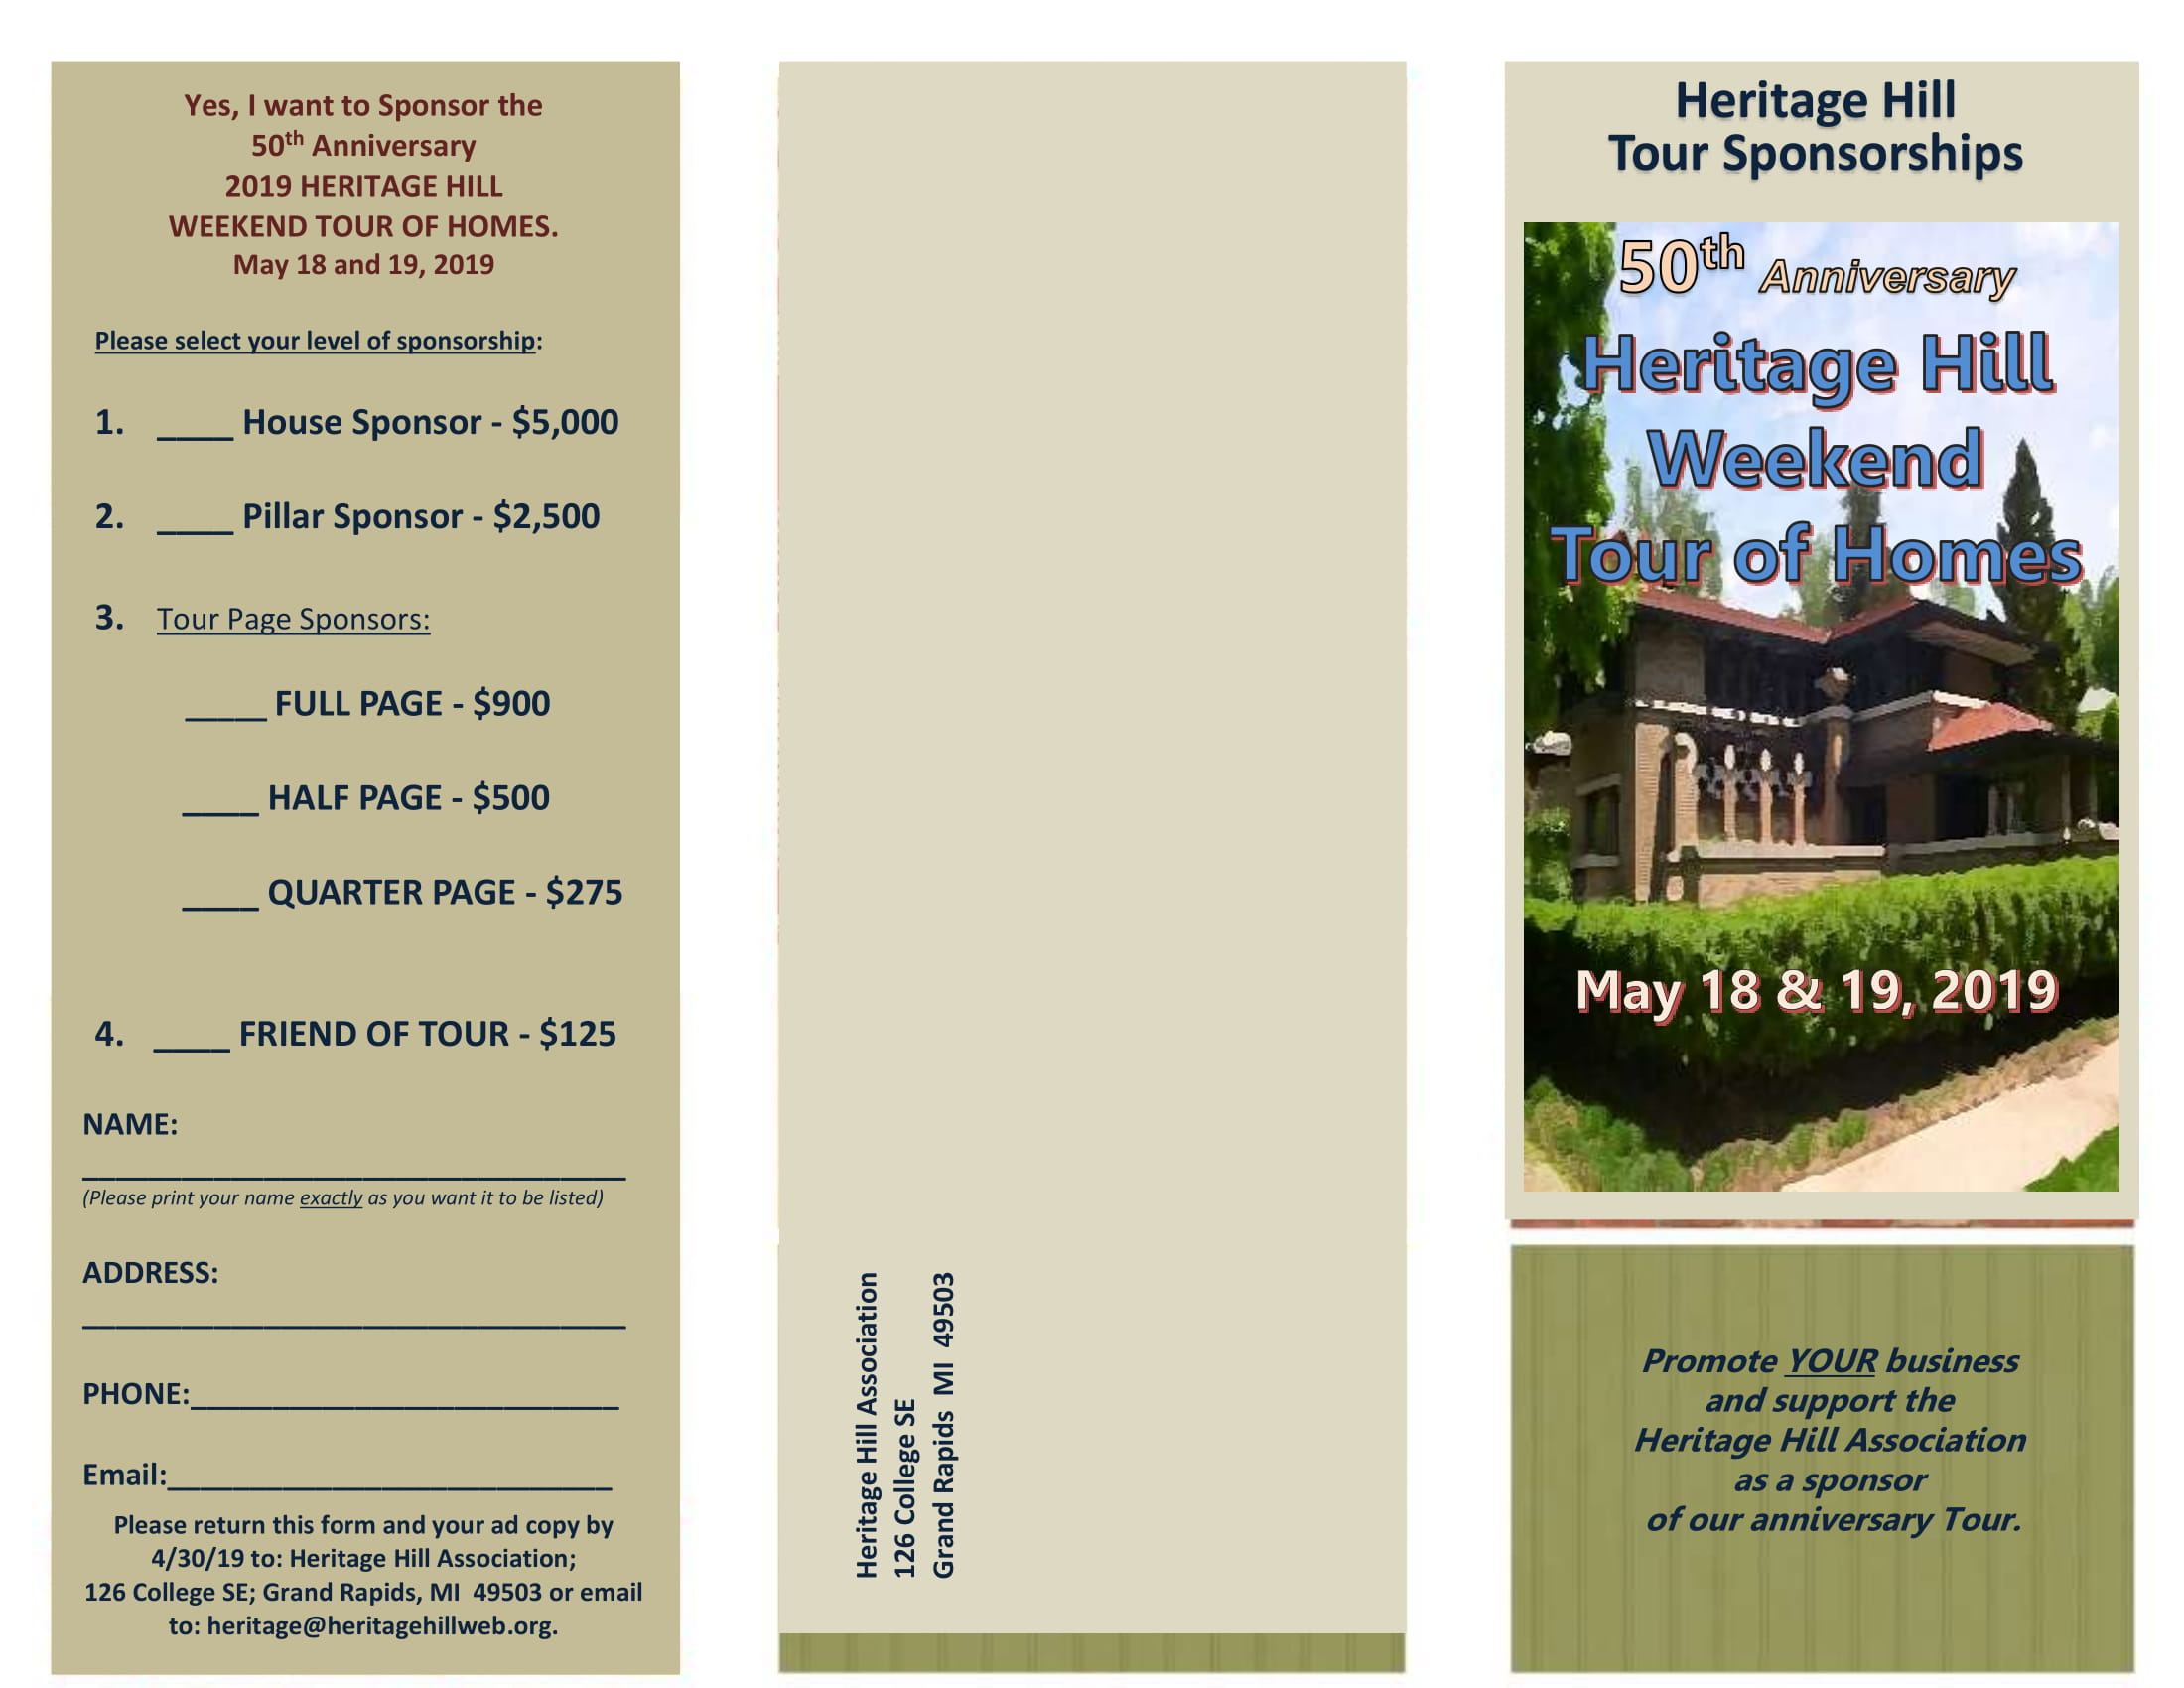 Sponsorship Opportunities for the 2020 Heritage Hill Annual